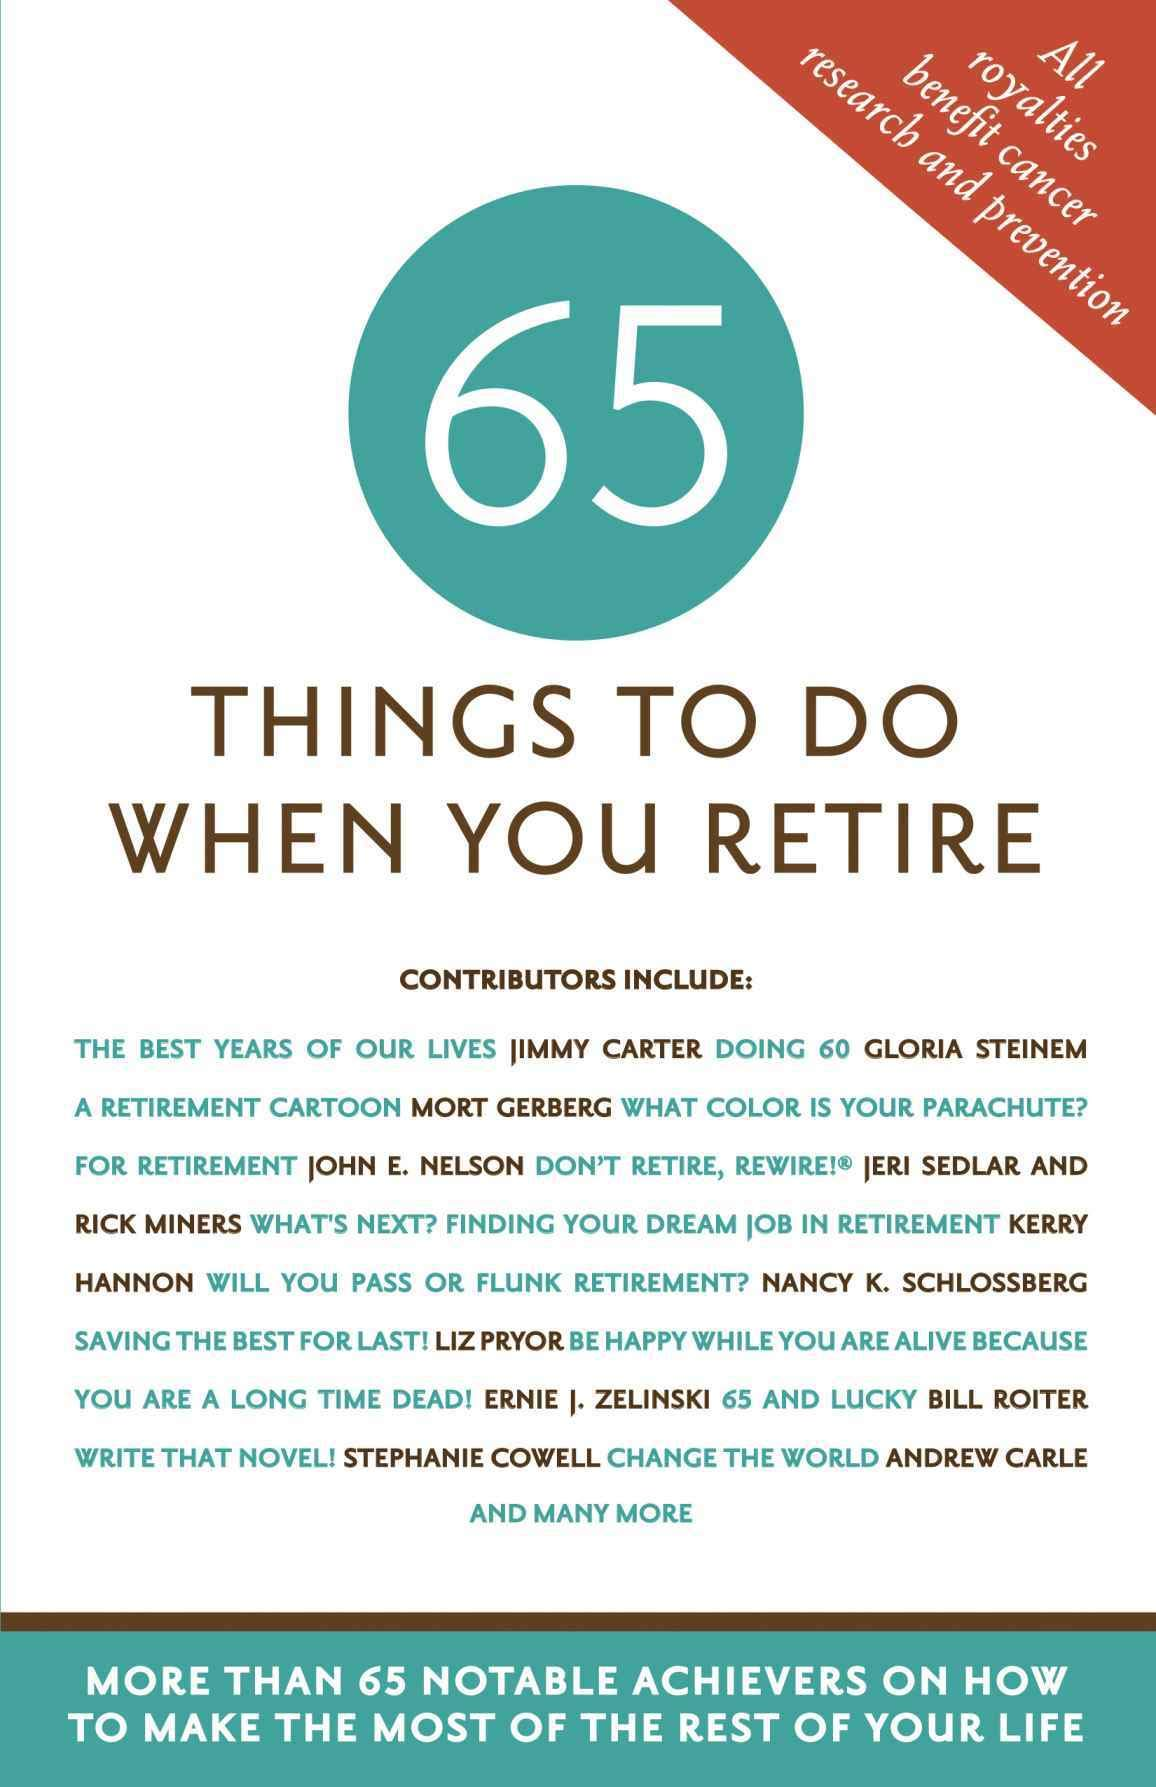 20 Things to Do When You Retire 20 Notable Achievers on How to ...